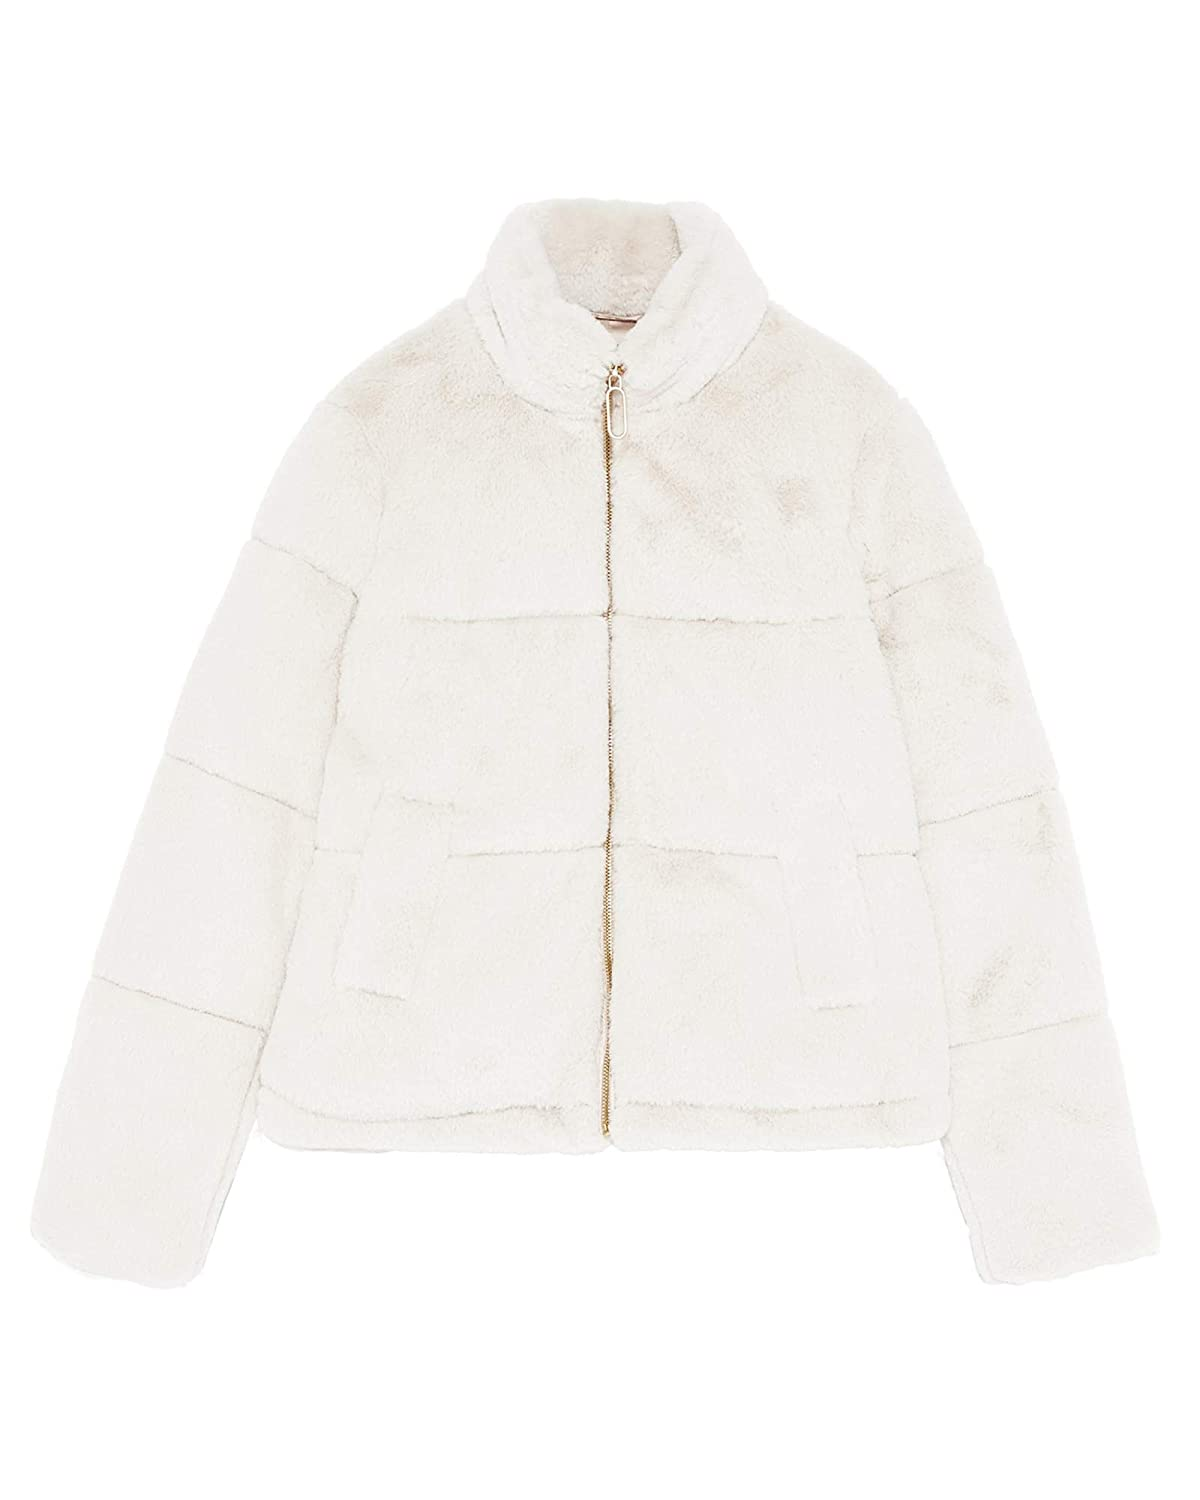 1134b6b2 Zara Women's Faux Fur Jacket 8073/033 Off-White: Amazon.co.uk: Clothing